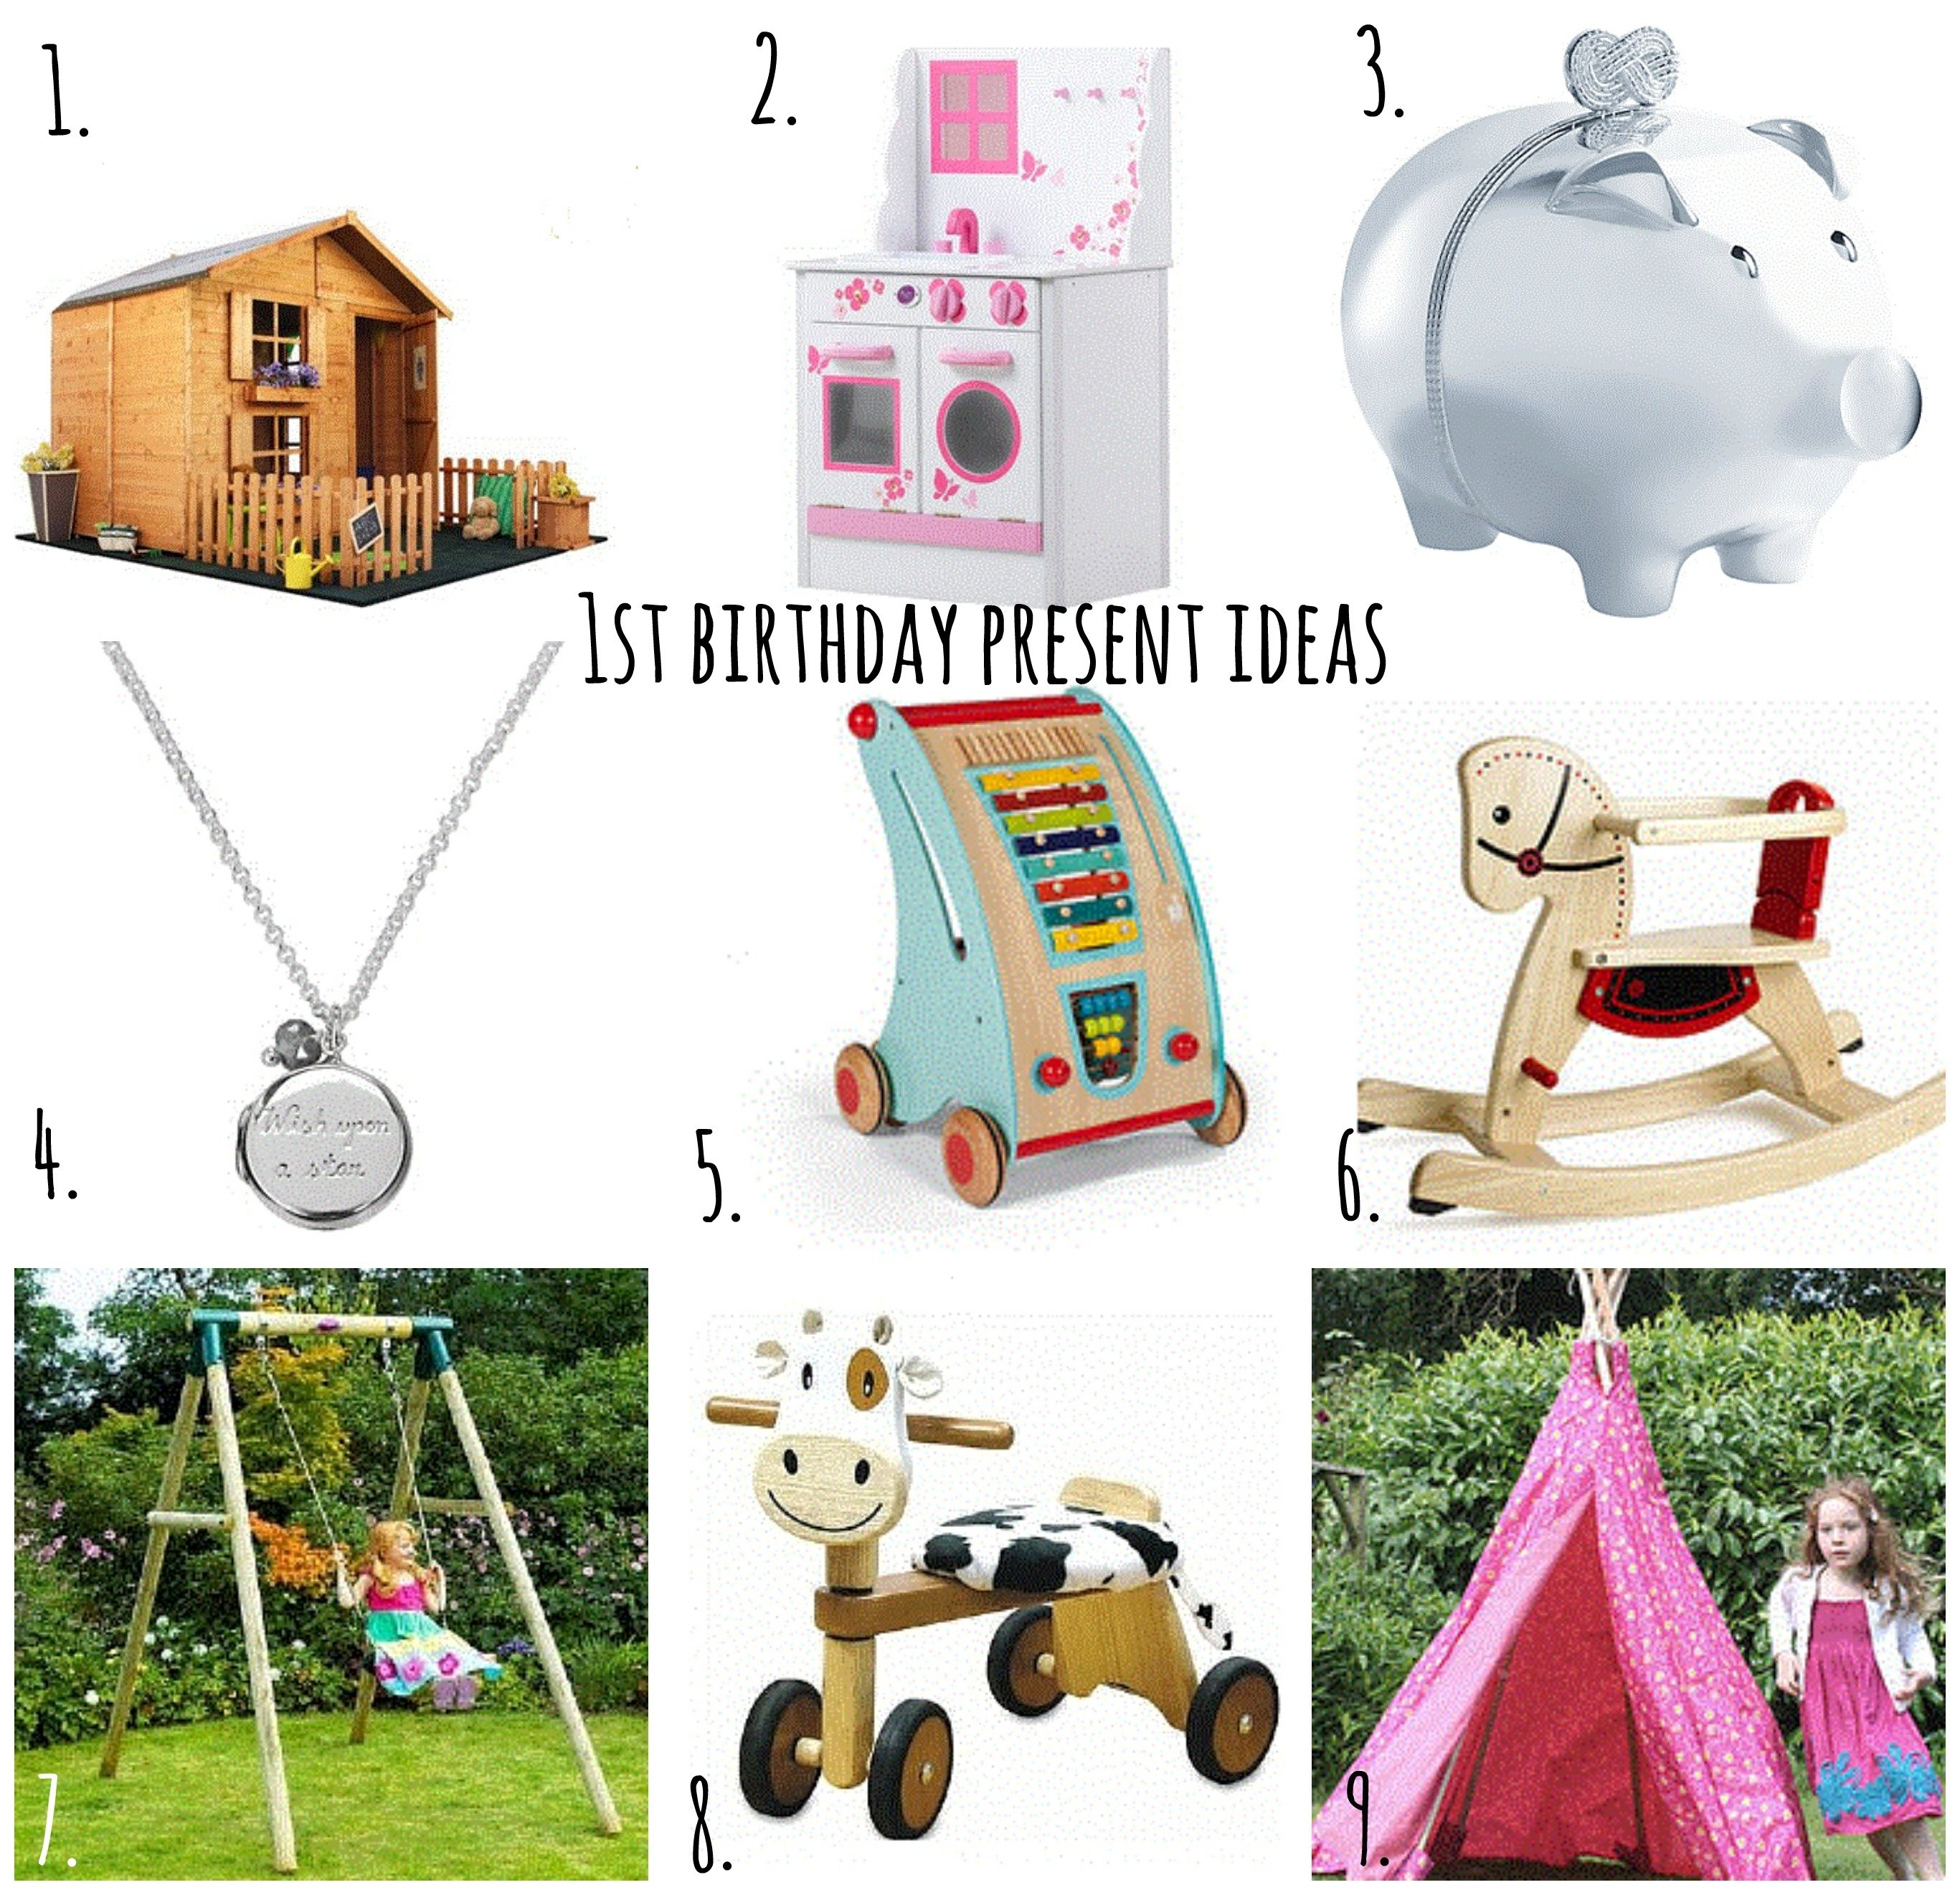 10 Cute 1St Birthday Gift Ideas For Girls do you need 1st birthday present ideas 2020